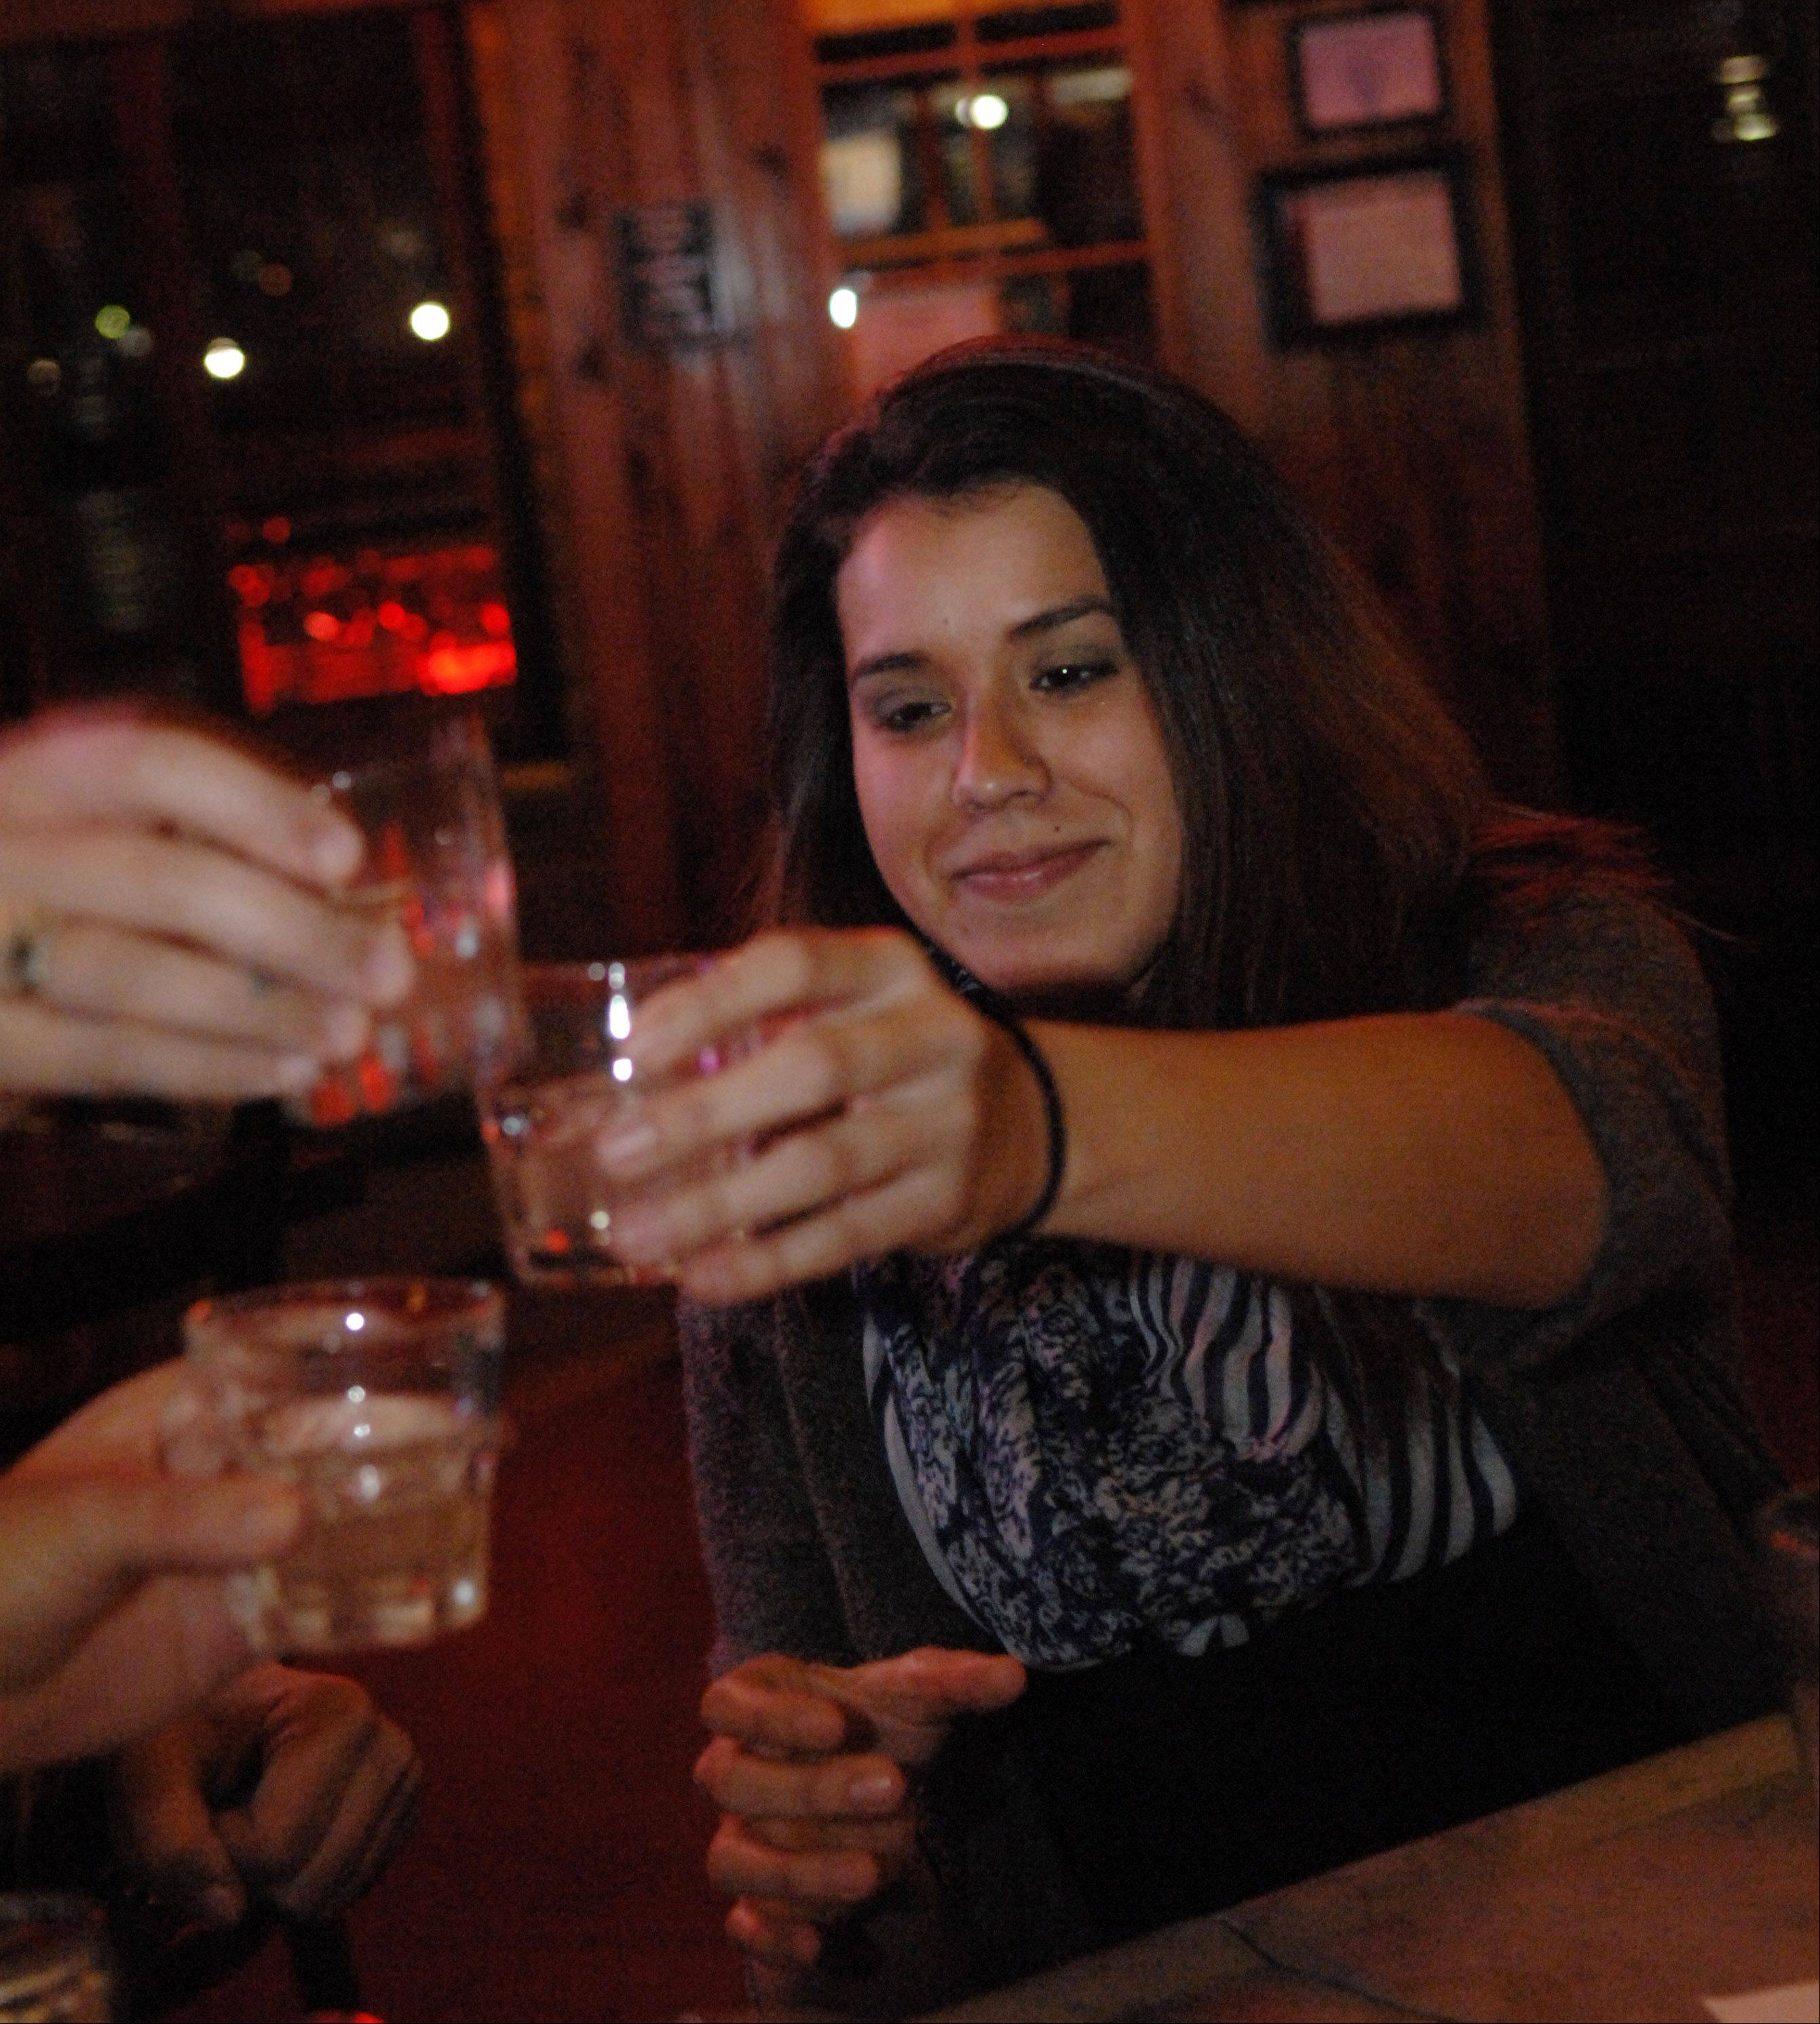 Jena Villarreal of Elgin toasts with shots at Prairie Rock Bar & Grill in Elgin.